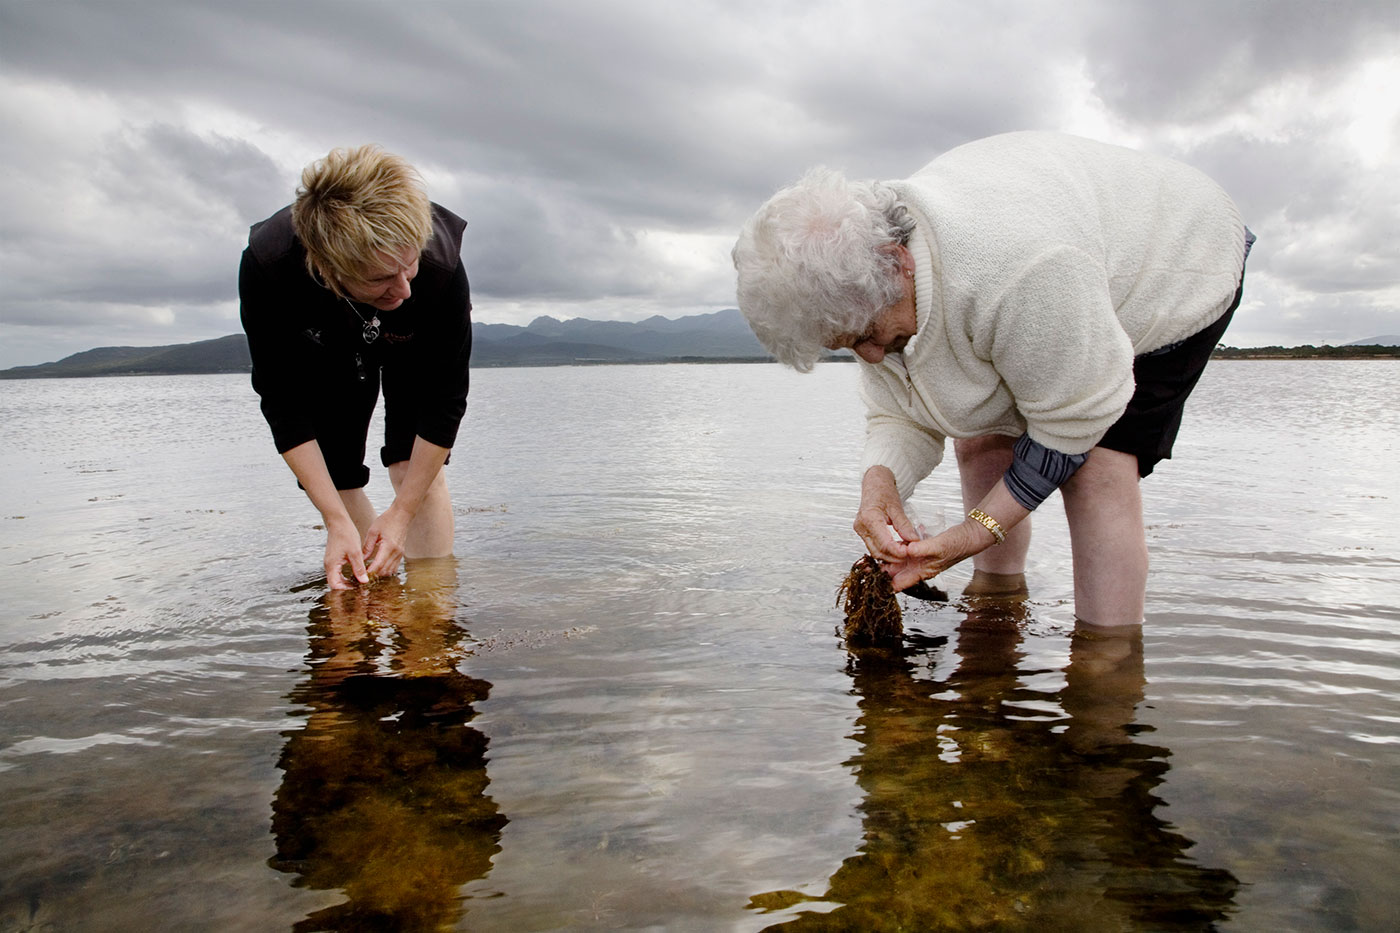 Two women standing in water and bending down looking for shells.